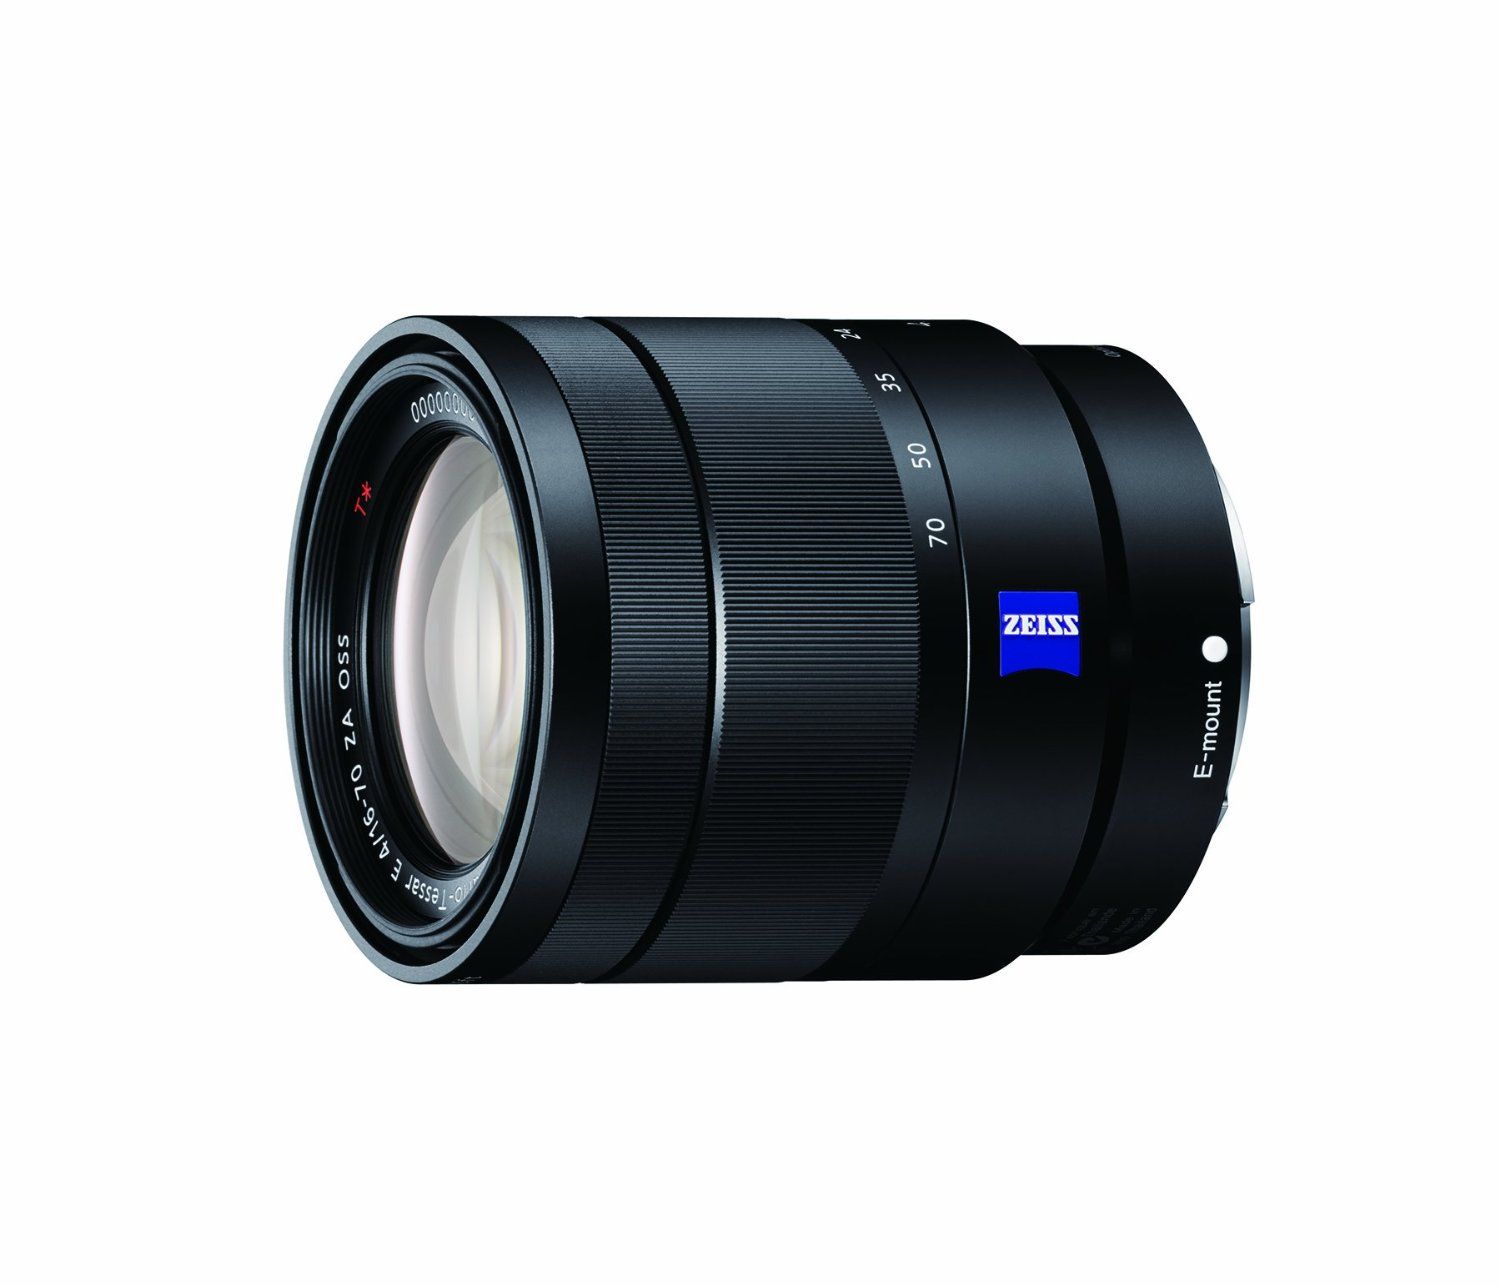 Zeiss 16-70 f/4 Lens - $898 New | ~$625 Used